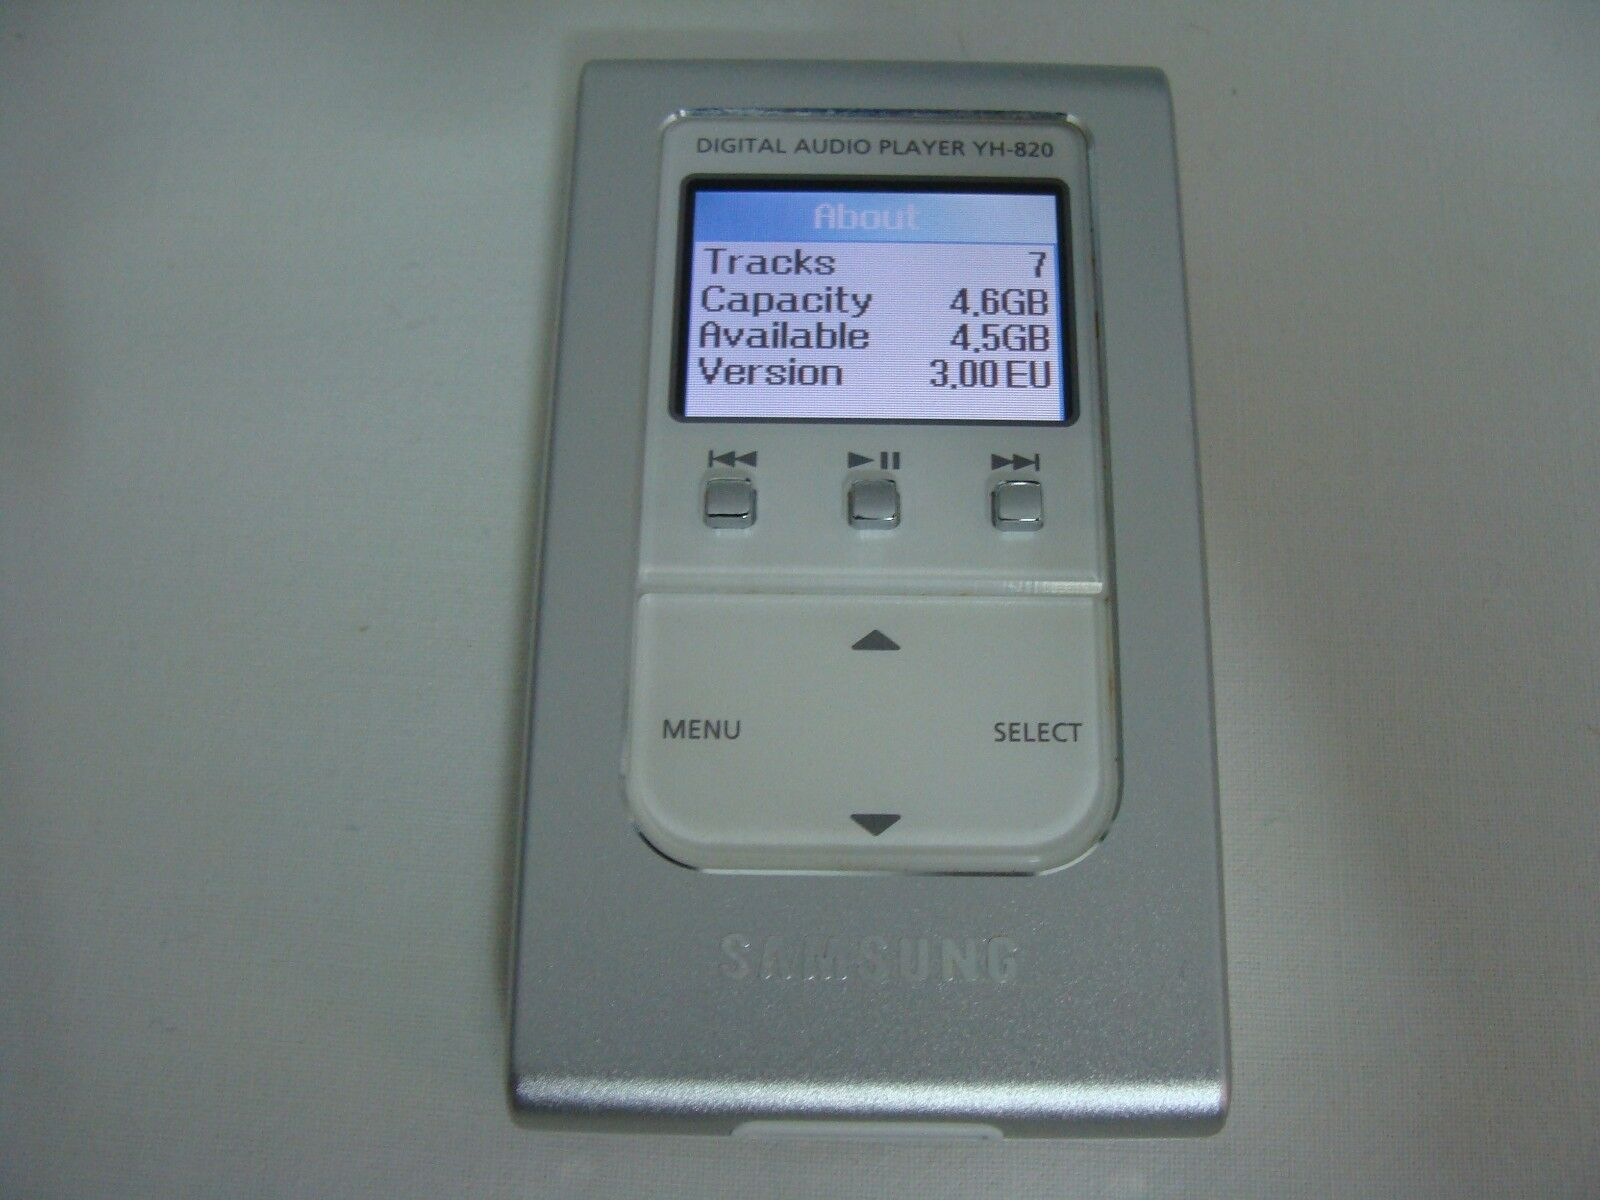 DIGITAL AUDIO PLAYER YH-820 DRIVERS FOR PC